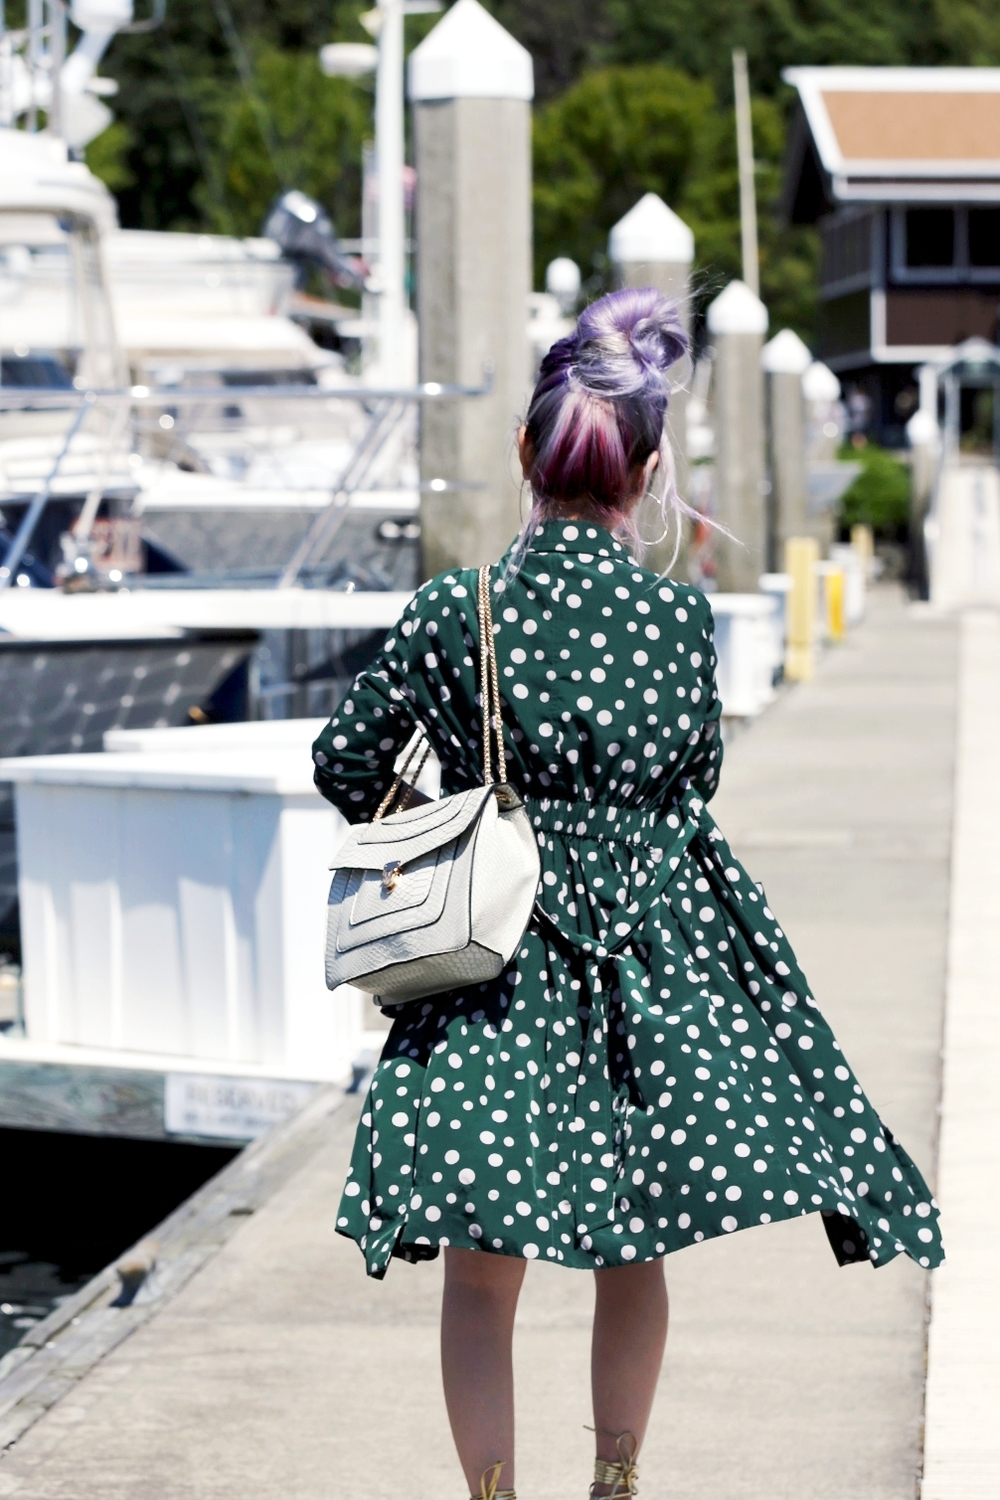 Yuna Yang Collection Polkadot Trench Coat & Blouse_ASOS Frayed Hem Denim Mini Skirt_Shoe Dazzle Gold Lace Up Wedge Sandals_Mellow World Bag_No Weekends Sunglasses_Daniel Wellington classic reading rose gold 458 watch_ Lavender Hair_Messy Bun Hairstyle_Aikas Love Closet_Seattle Fashion Blogger from Japan